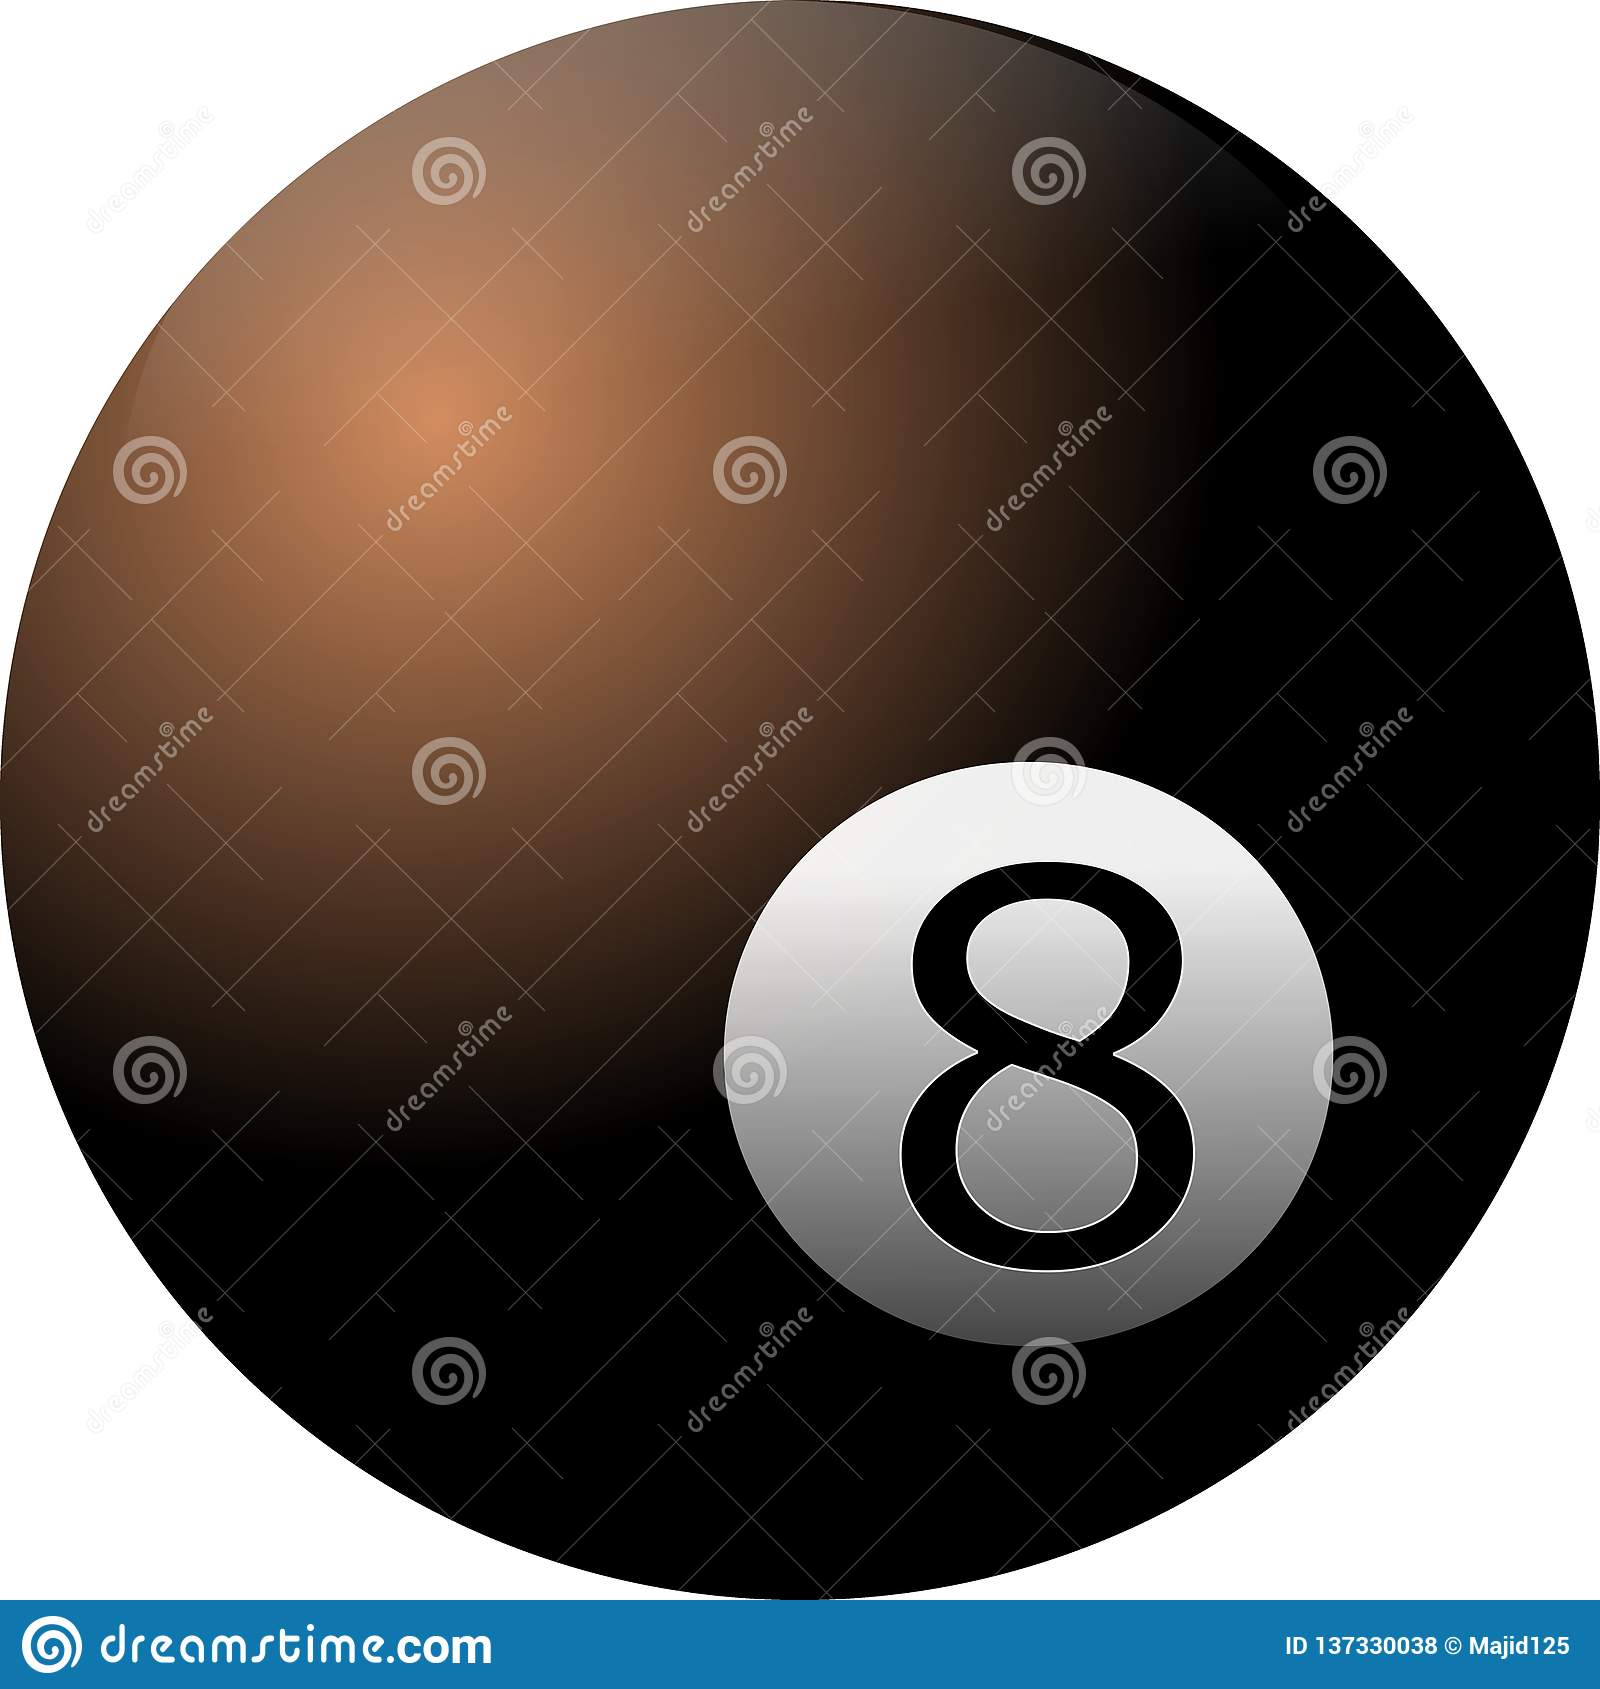 8 ball on white background